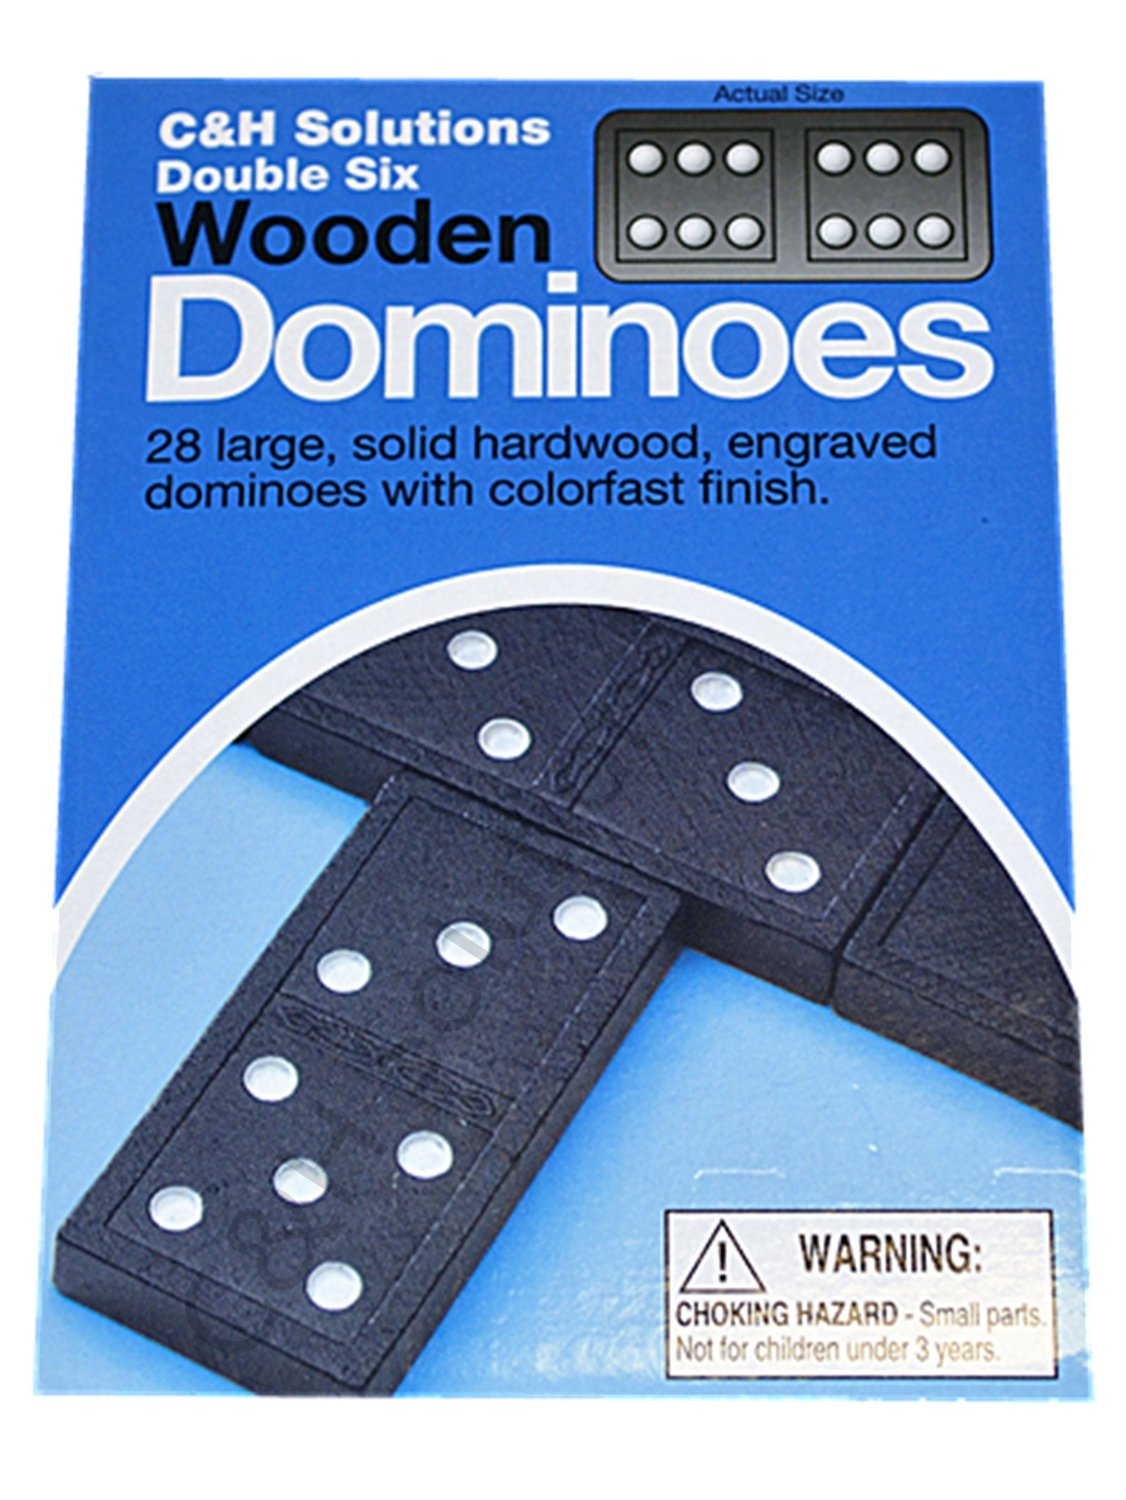 Double 6 Dominoes Black With White Dots Wooden Dominoes 28 PCS